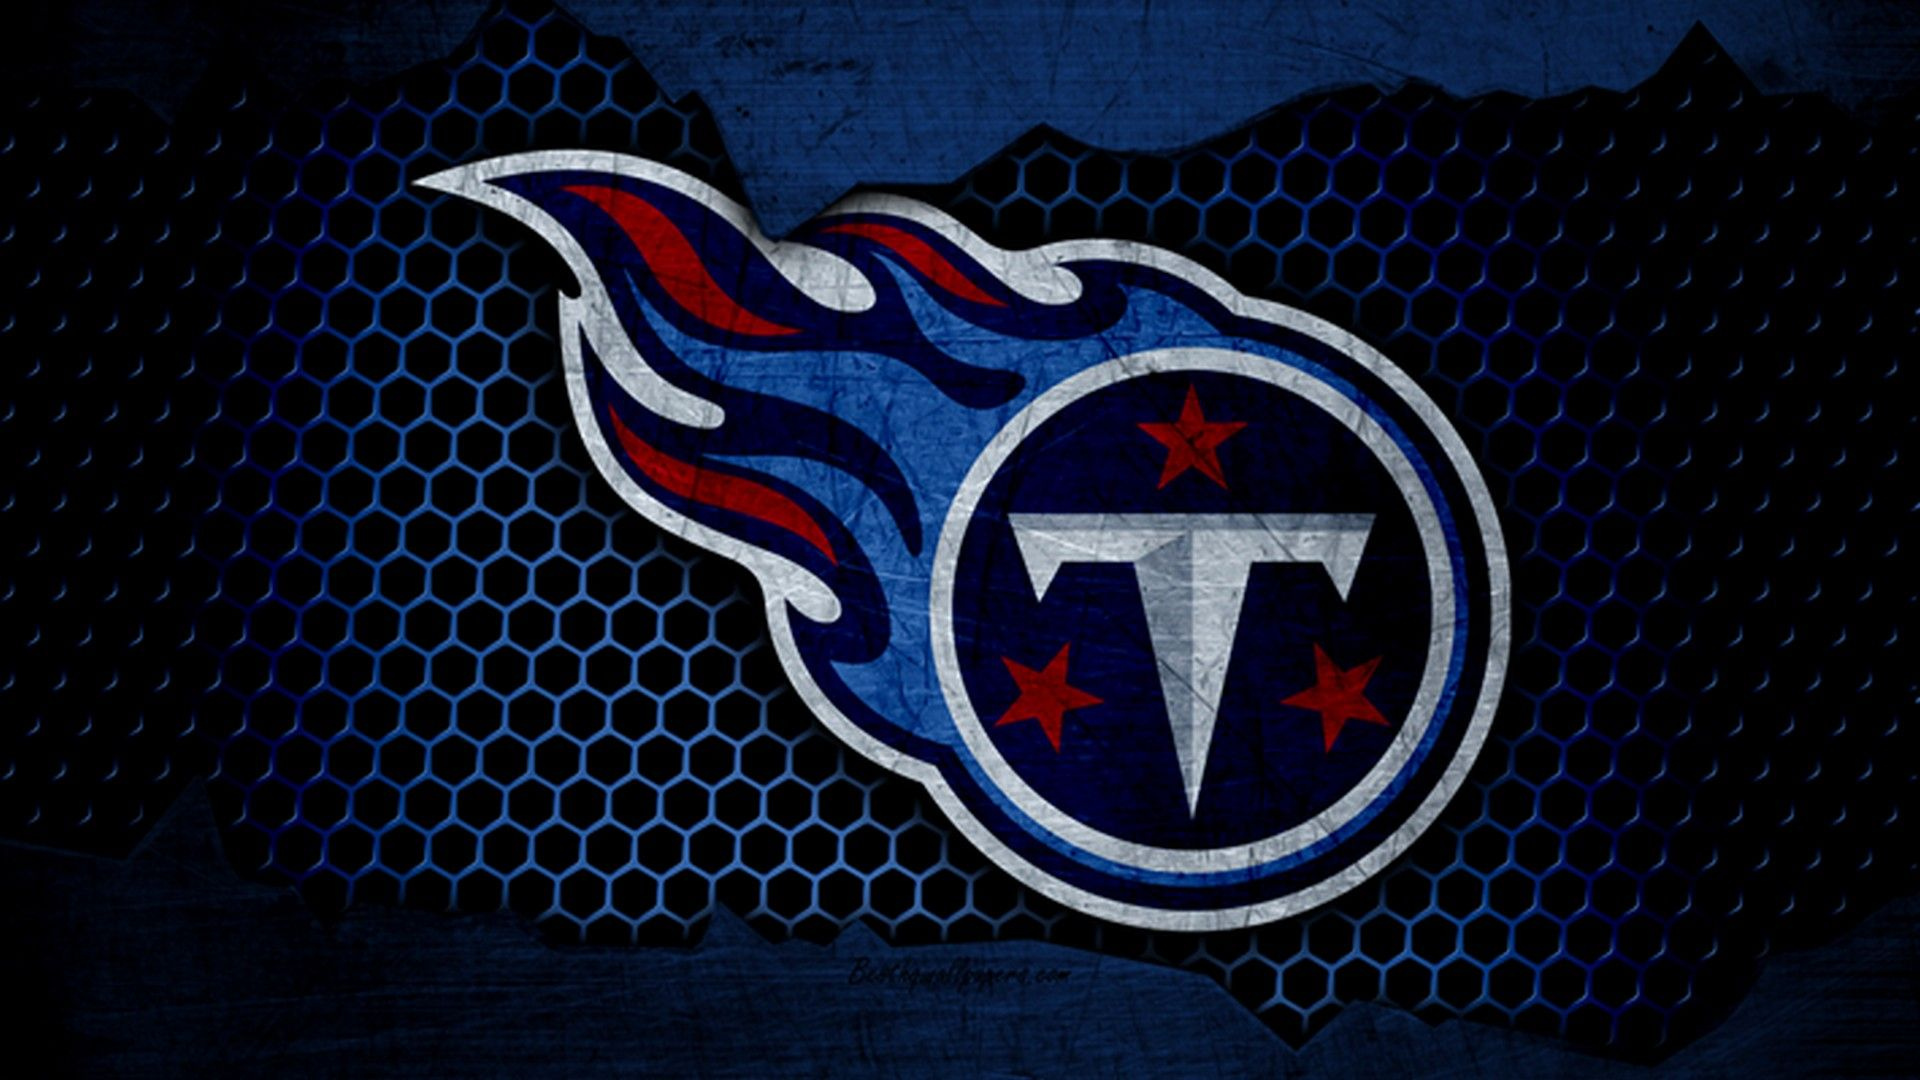 HD Desktop Wallpaper Tennessee Titans Nfl football